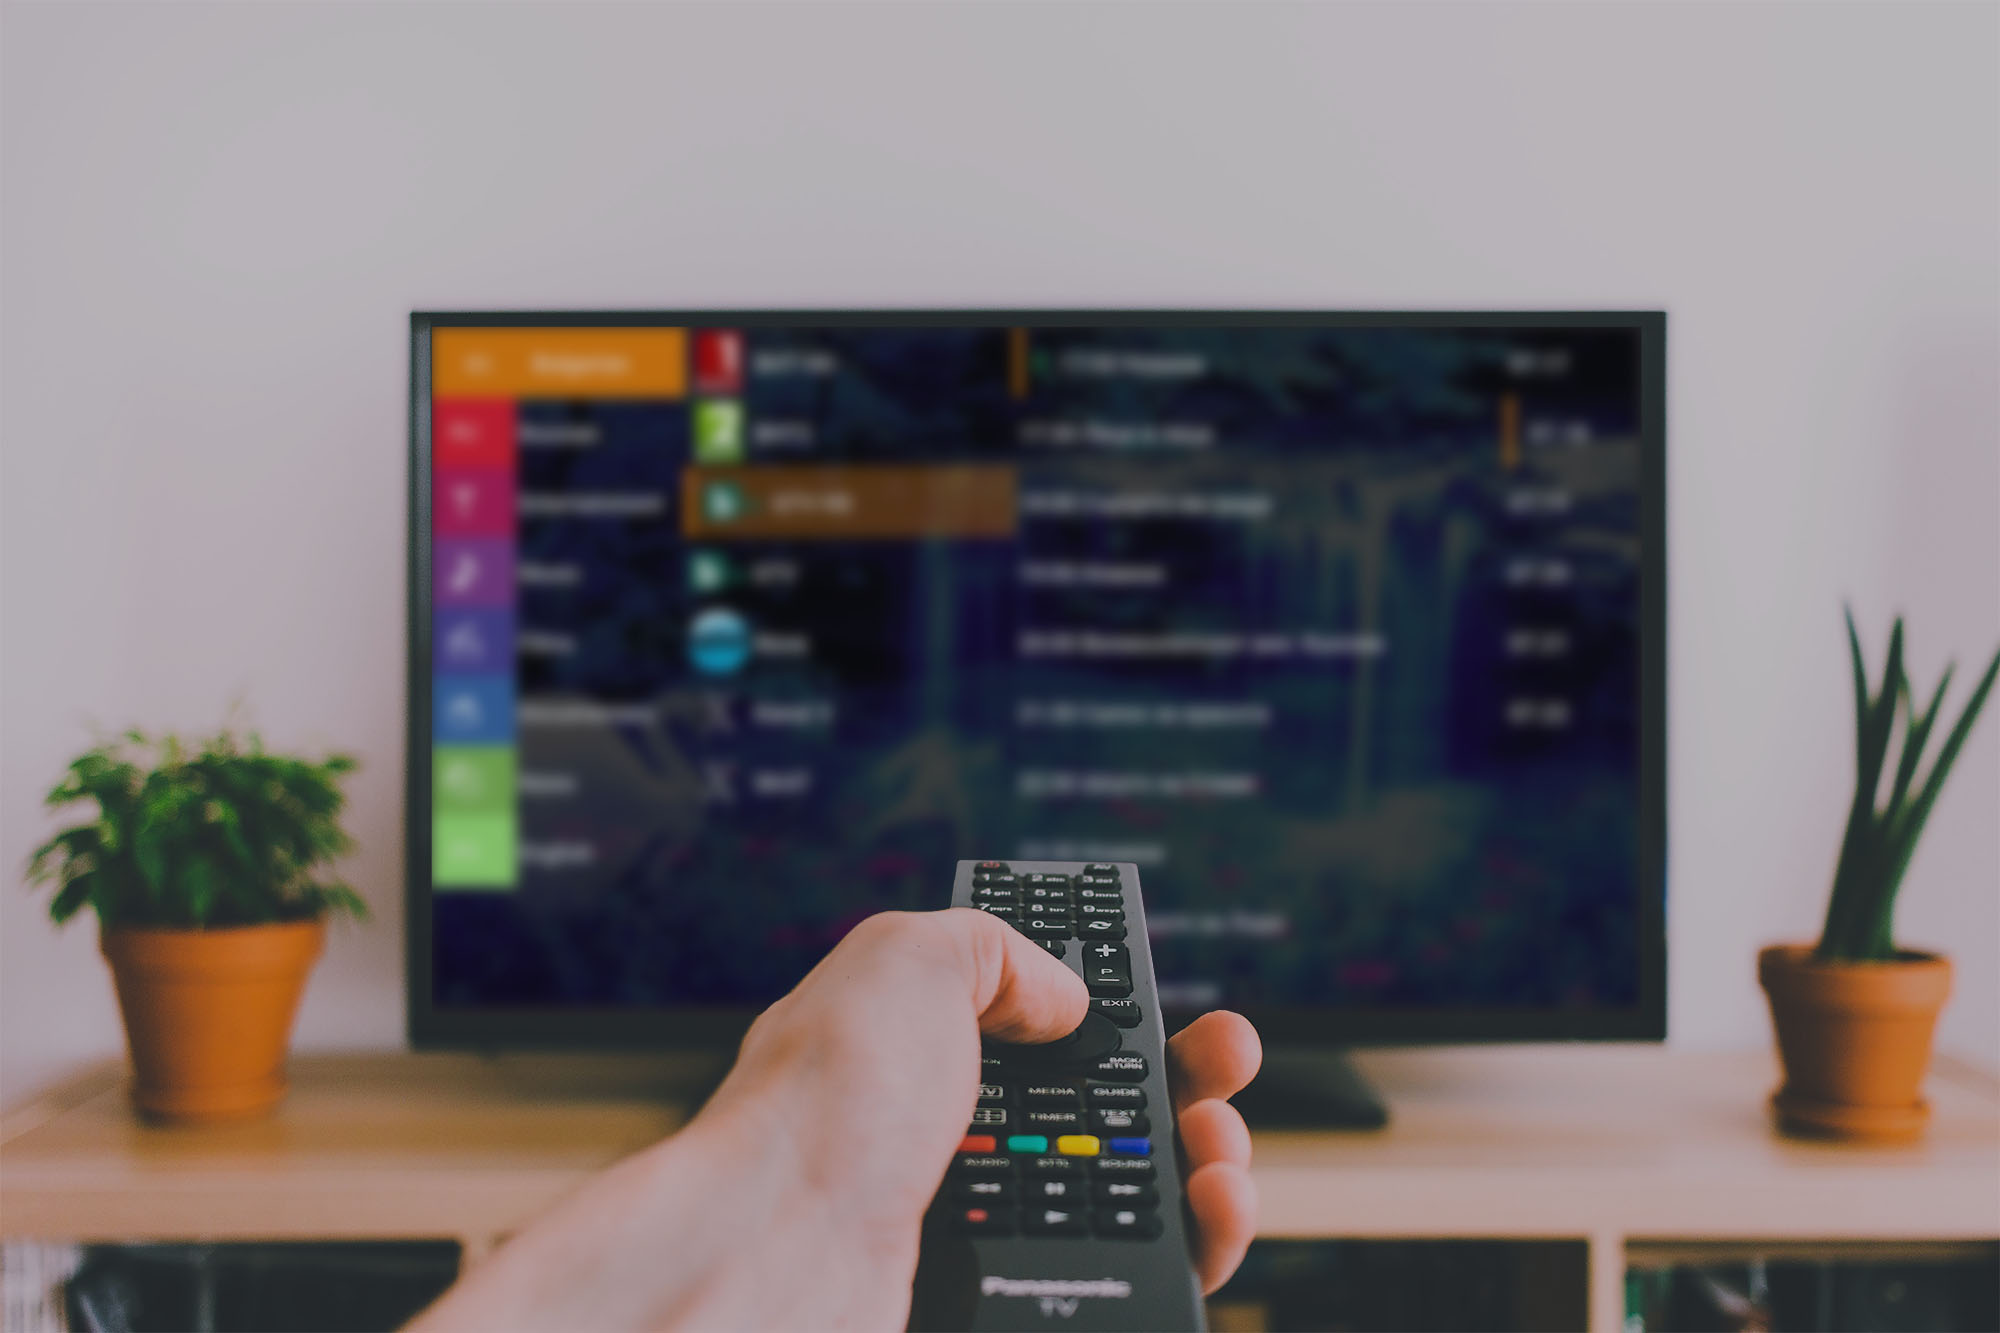 Android TV app developers